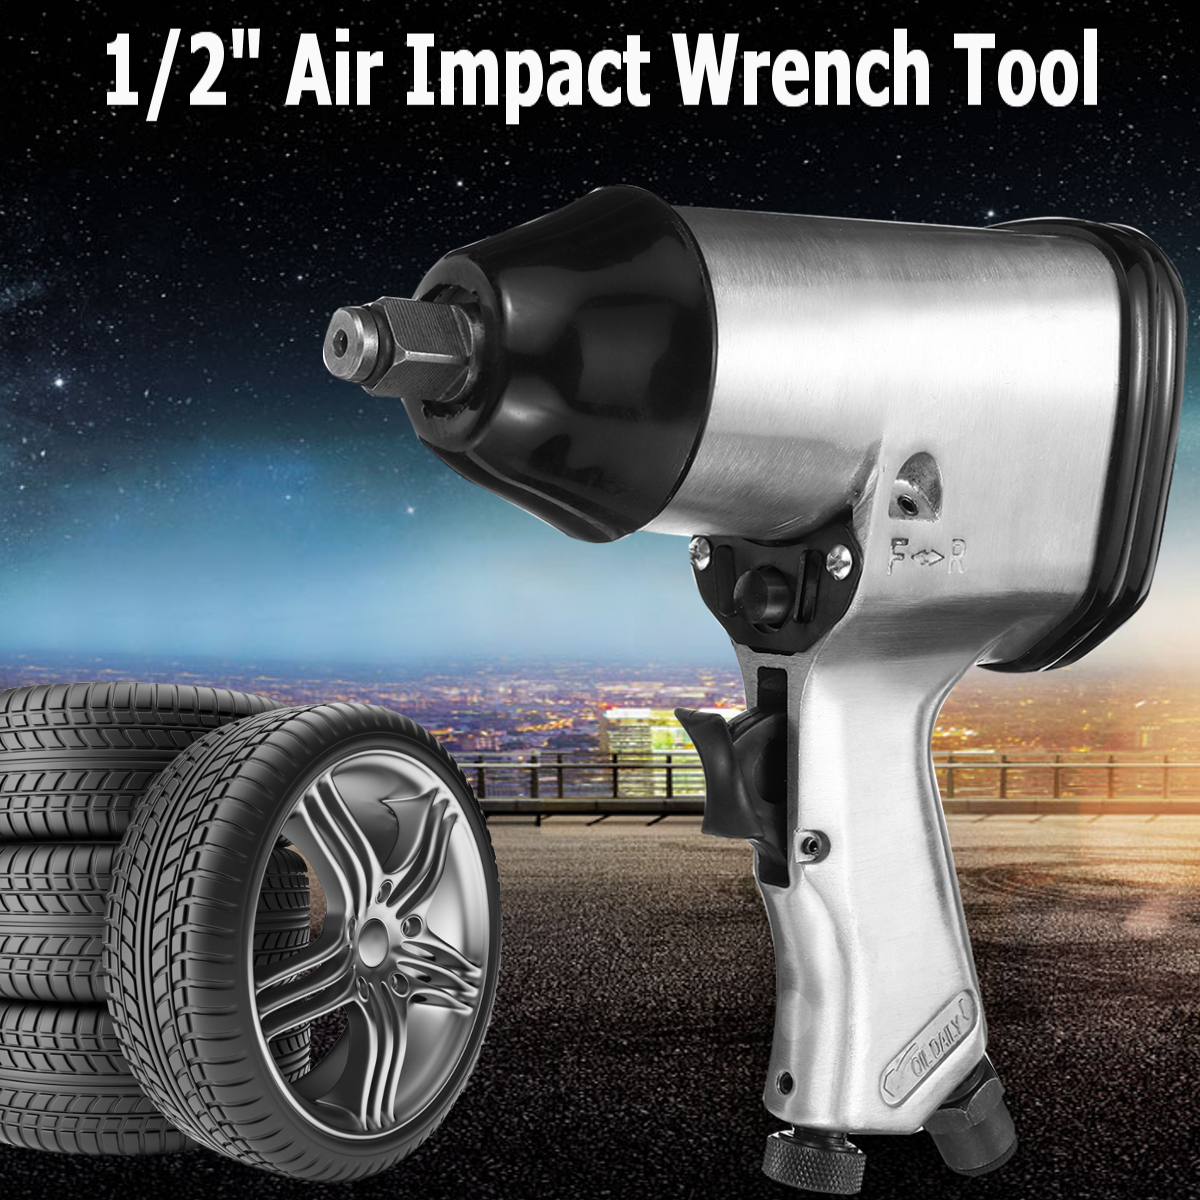 """Heavy 1/2""""Air Impact Wrench Tool Drive Pneumatic For Car Wheel Repairing Die Cast Aluminum High Torque Low Noise 4CFM 90PSI